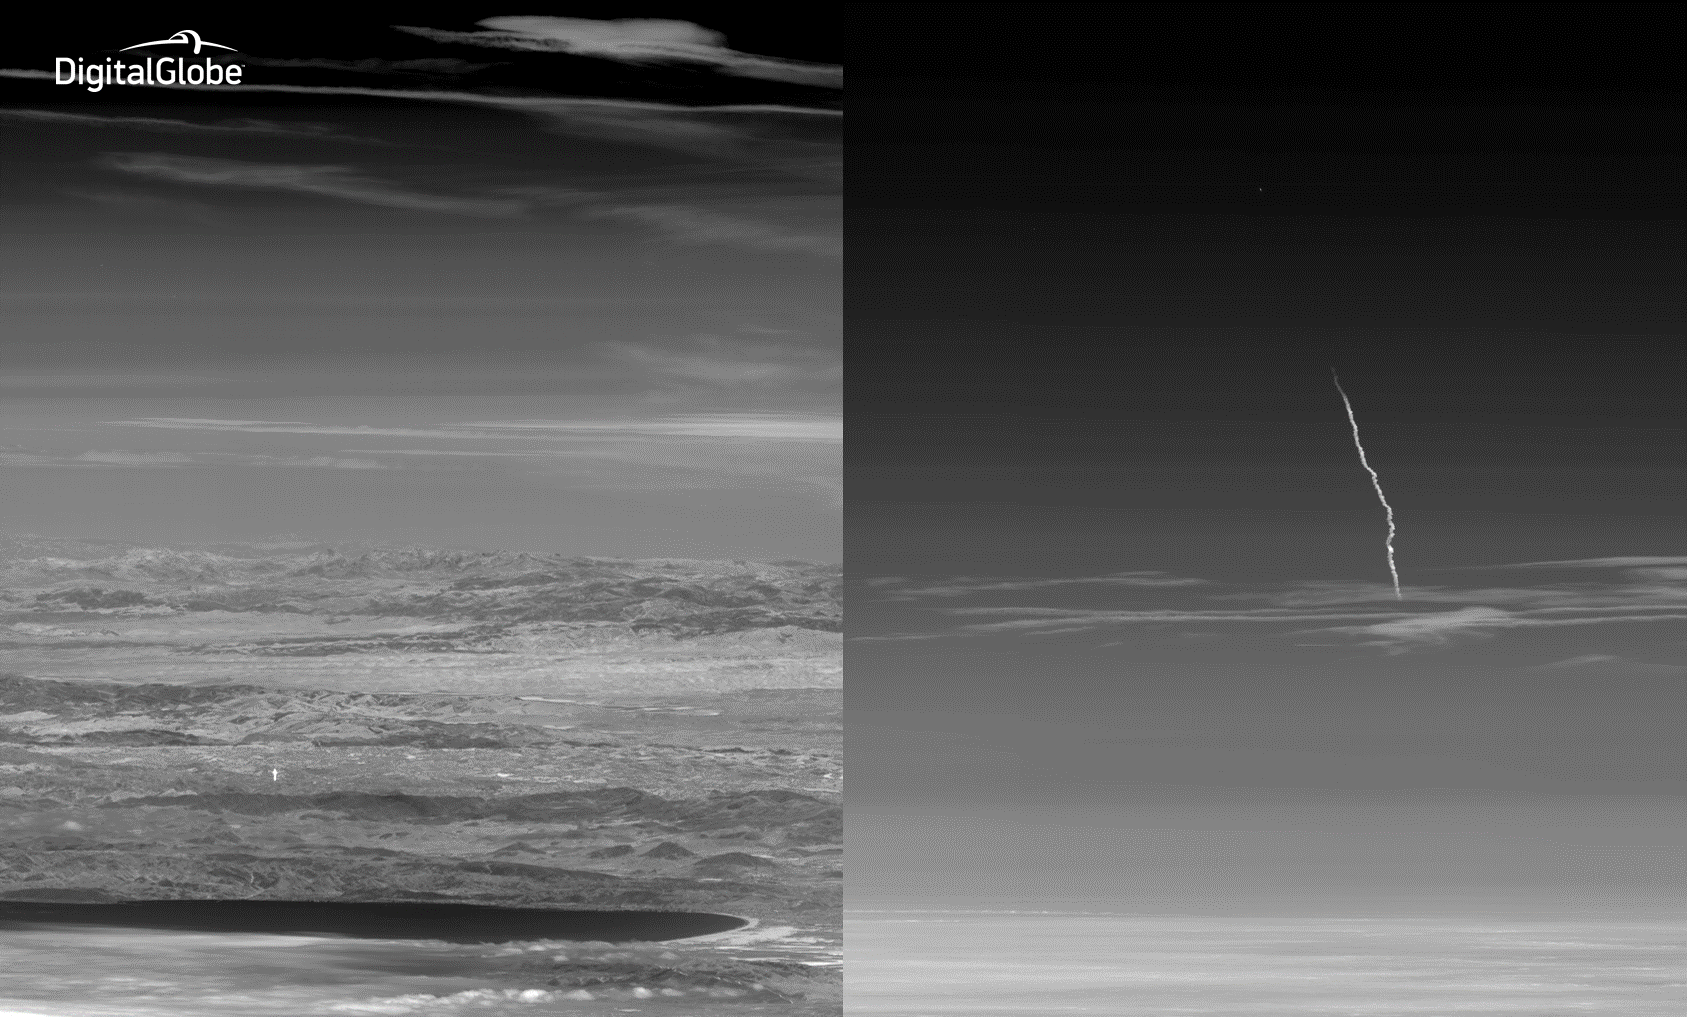 Left image: WorldView-3 launch showing the rocket rising above the horizon captured by WorldView-2. WorldView-2 was flying over 1,600 miles south of the launch looking back toward the horizon. Right image: Contrail from the WorldView-3 launch rocket.